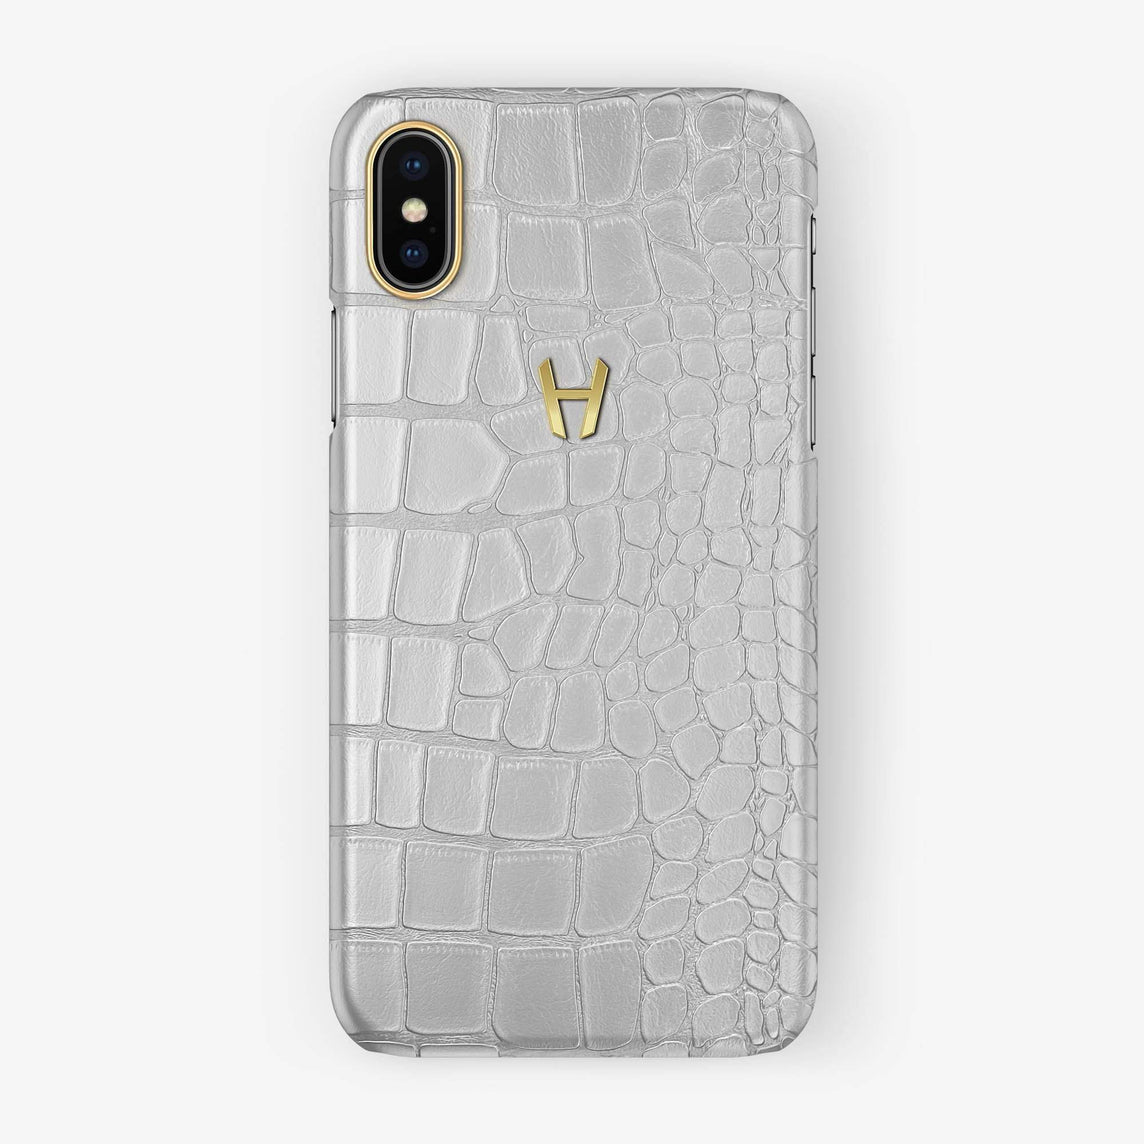 Alligator [iPhone Case] [model:iphone-xsmax-case] [colour:white] [finishing:yellow-gold] - Hadoro